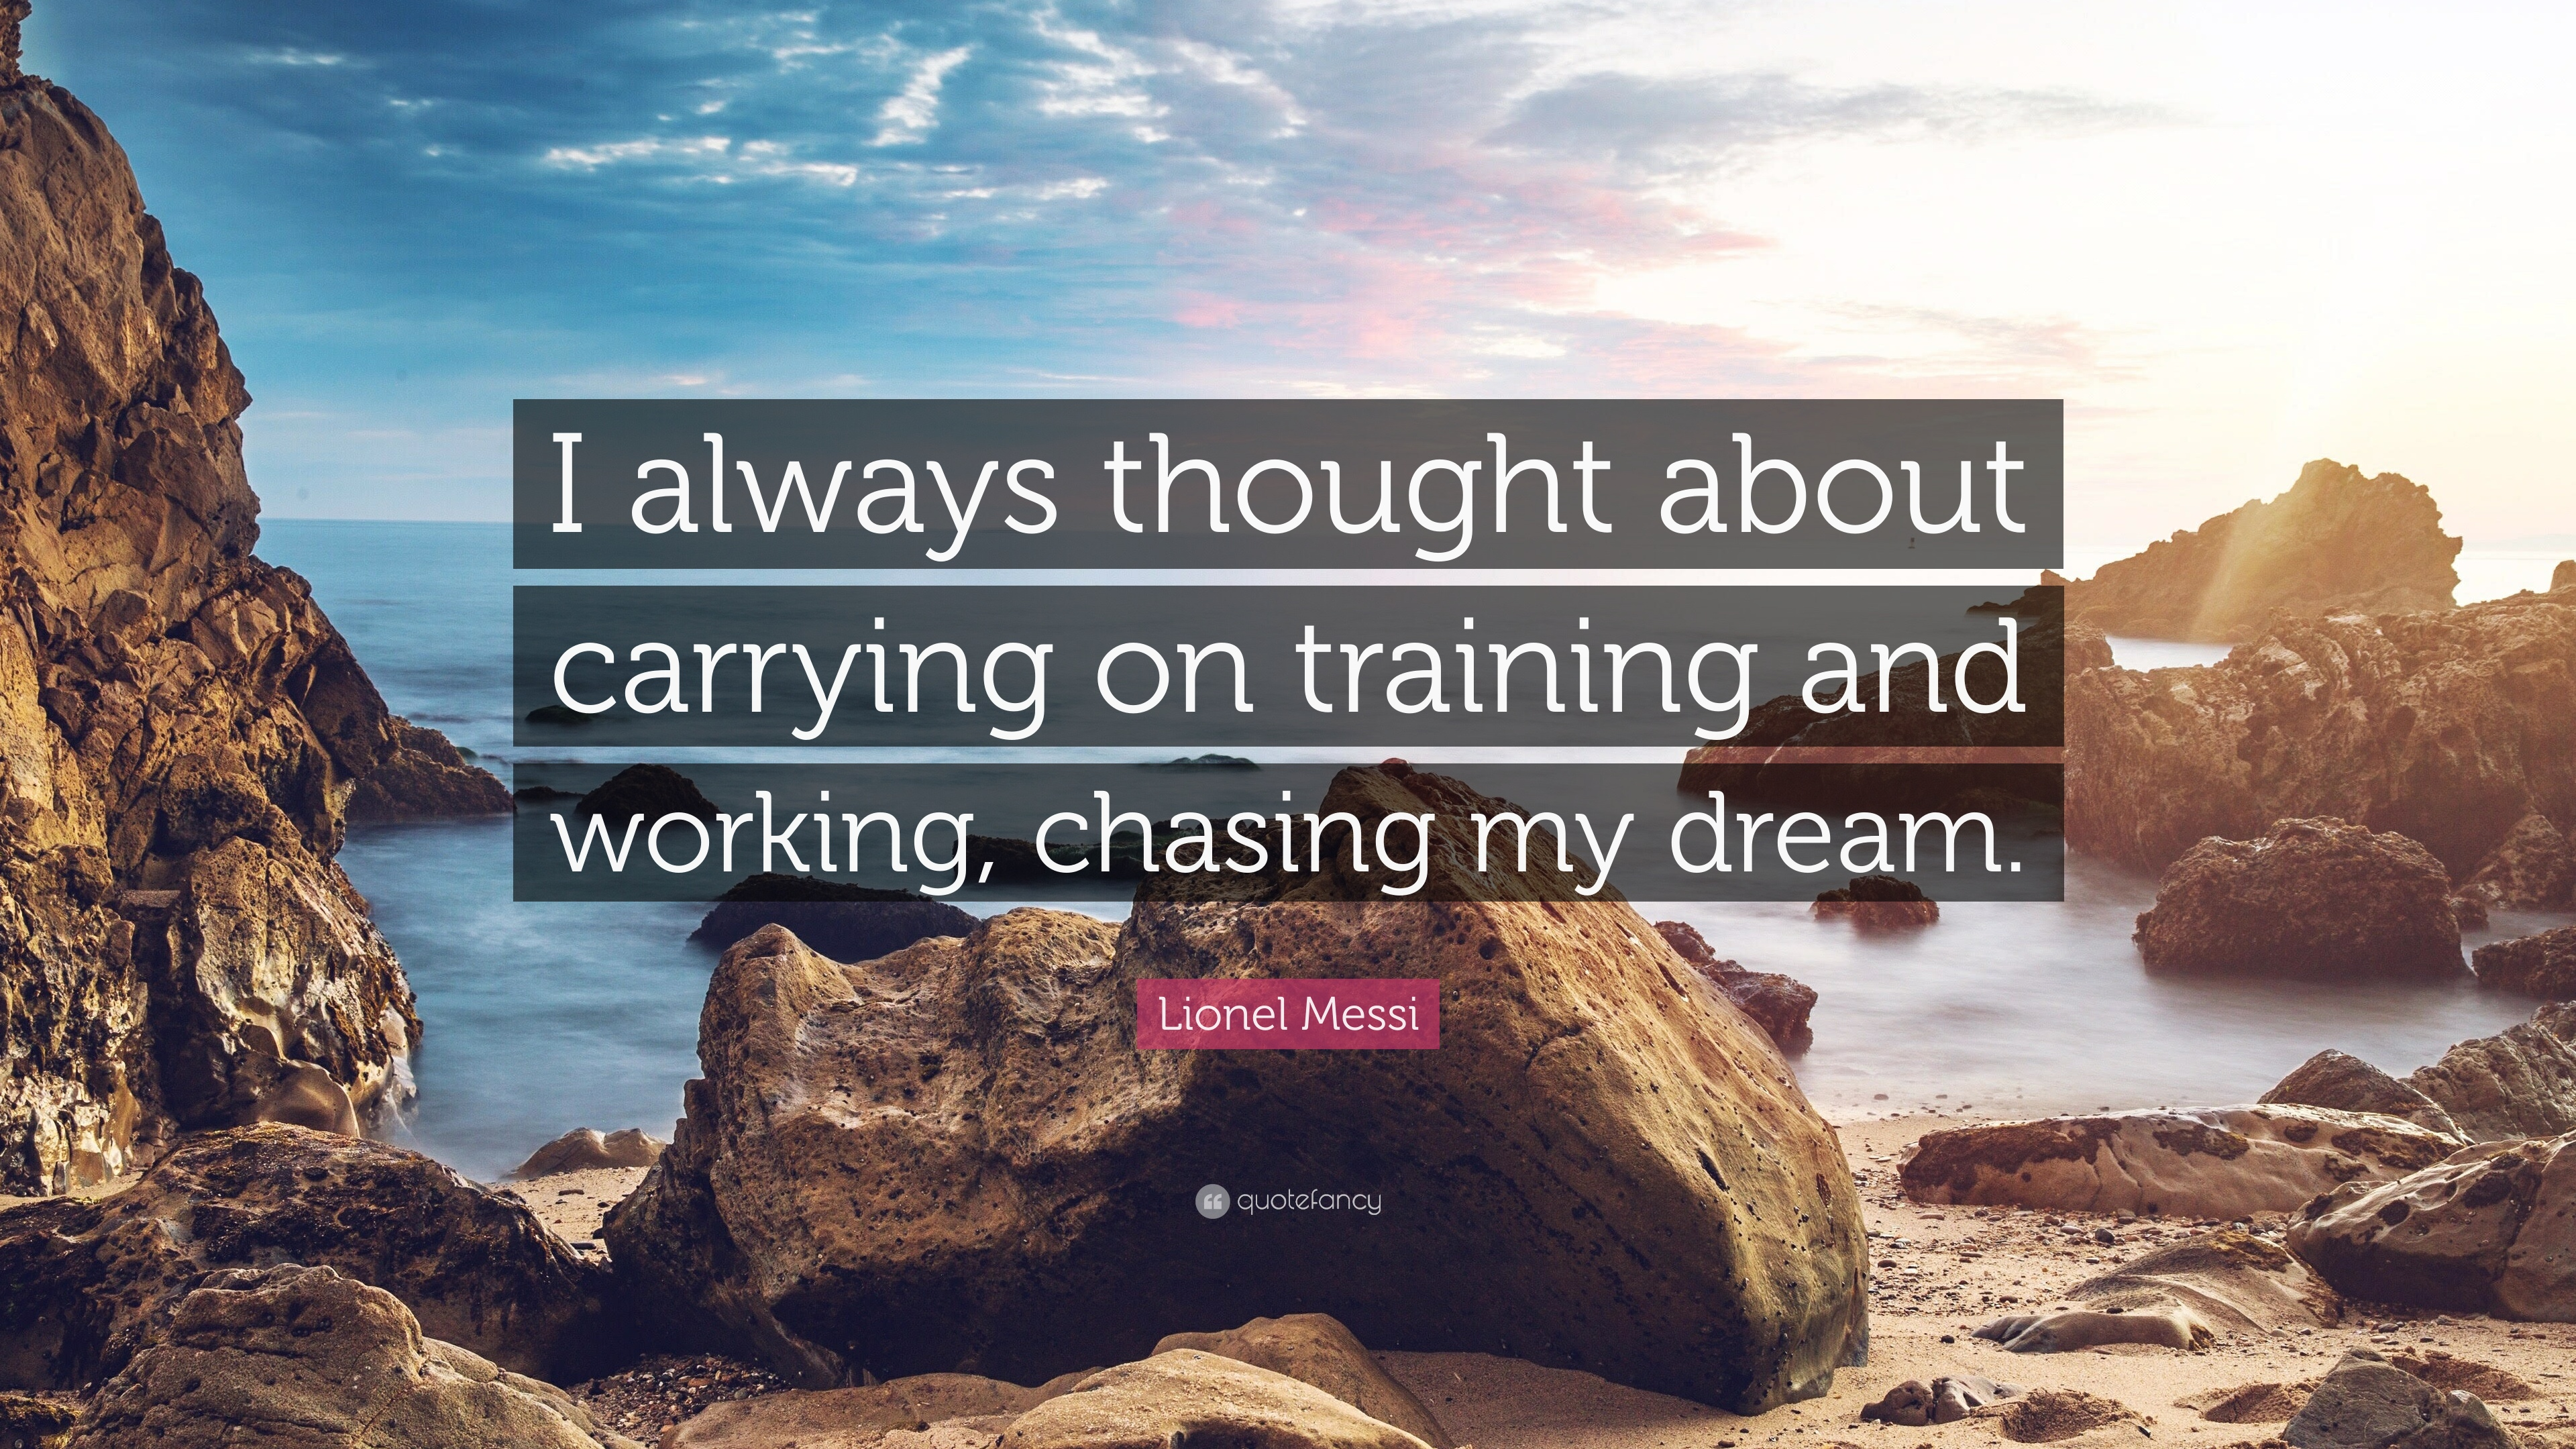 Lionel Messi Quote: U201cI Always Thought About Carrying On Training And  Working, Chasing